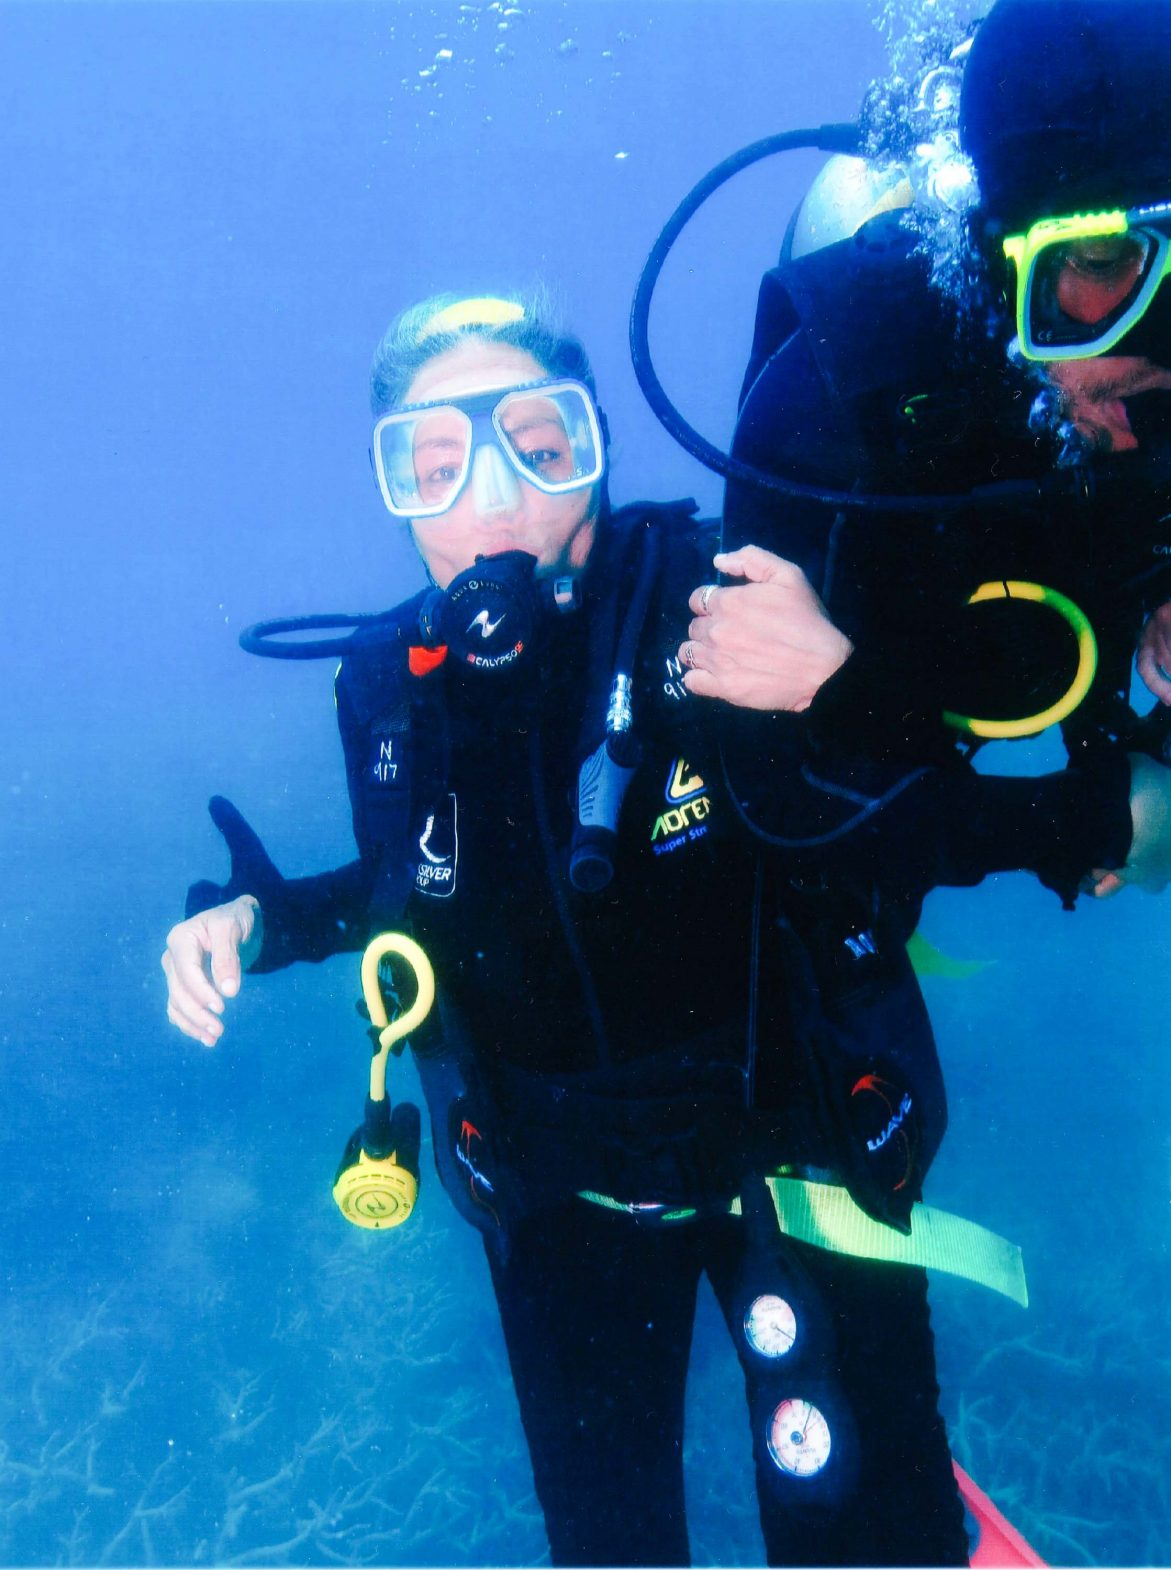 Sudha scuba-diving at the Great Barrier Reef near Cairns, Australia.